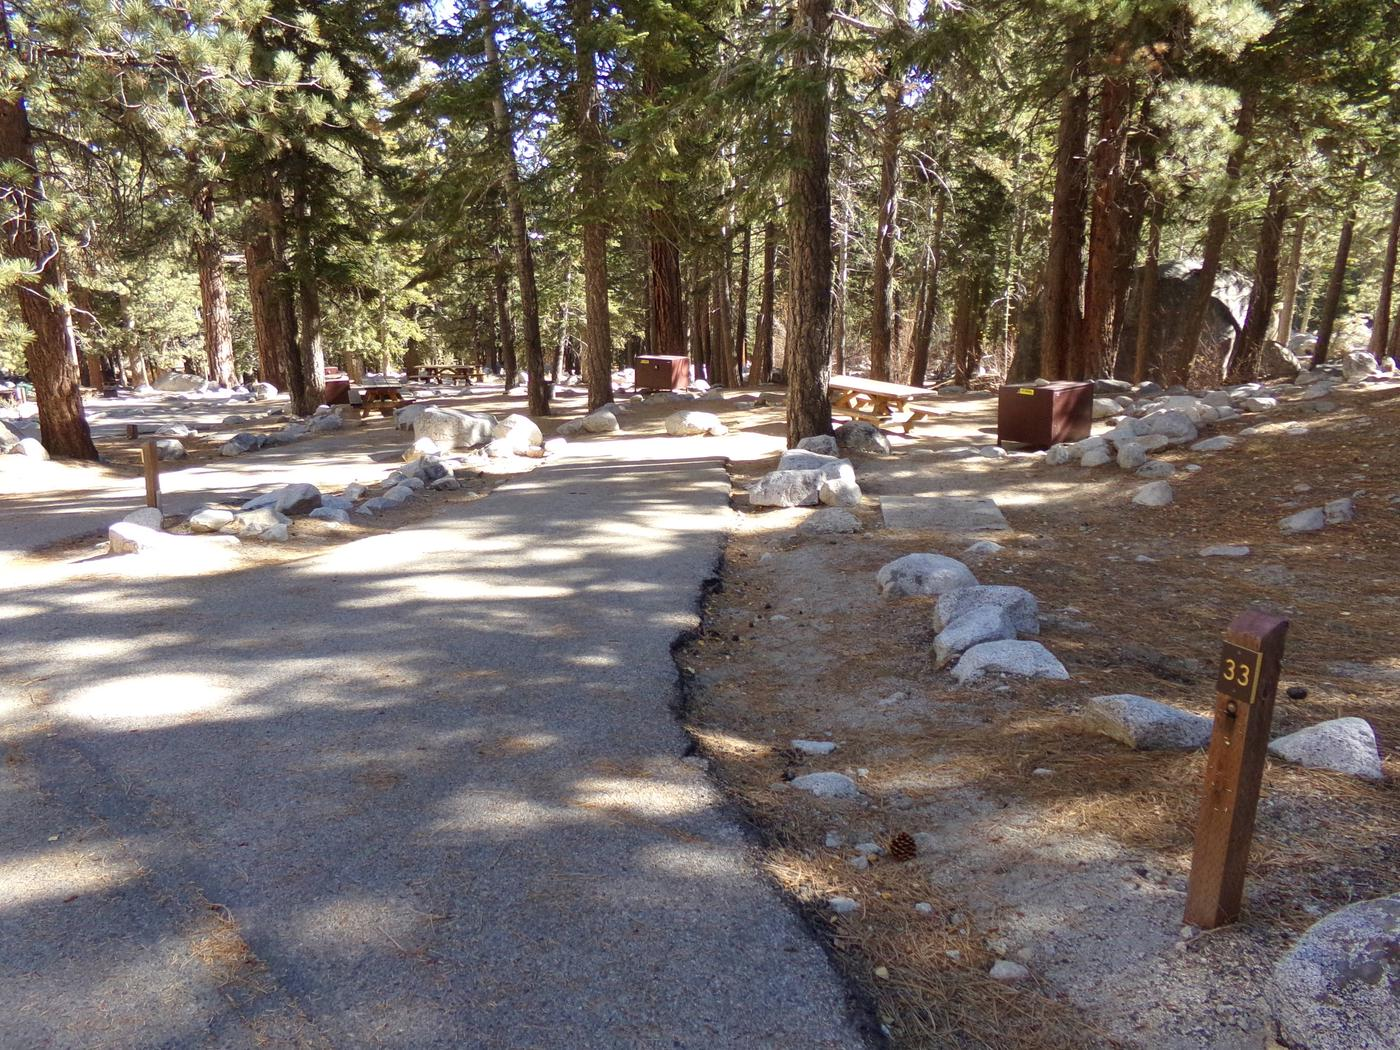 Parking space and entrance to site #33, Mt. Whitney Portal Campground.